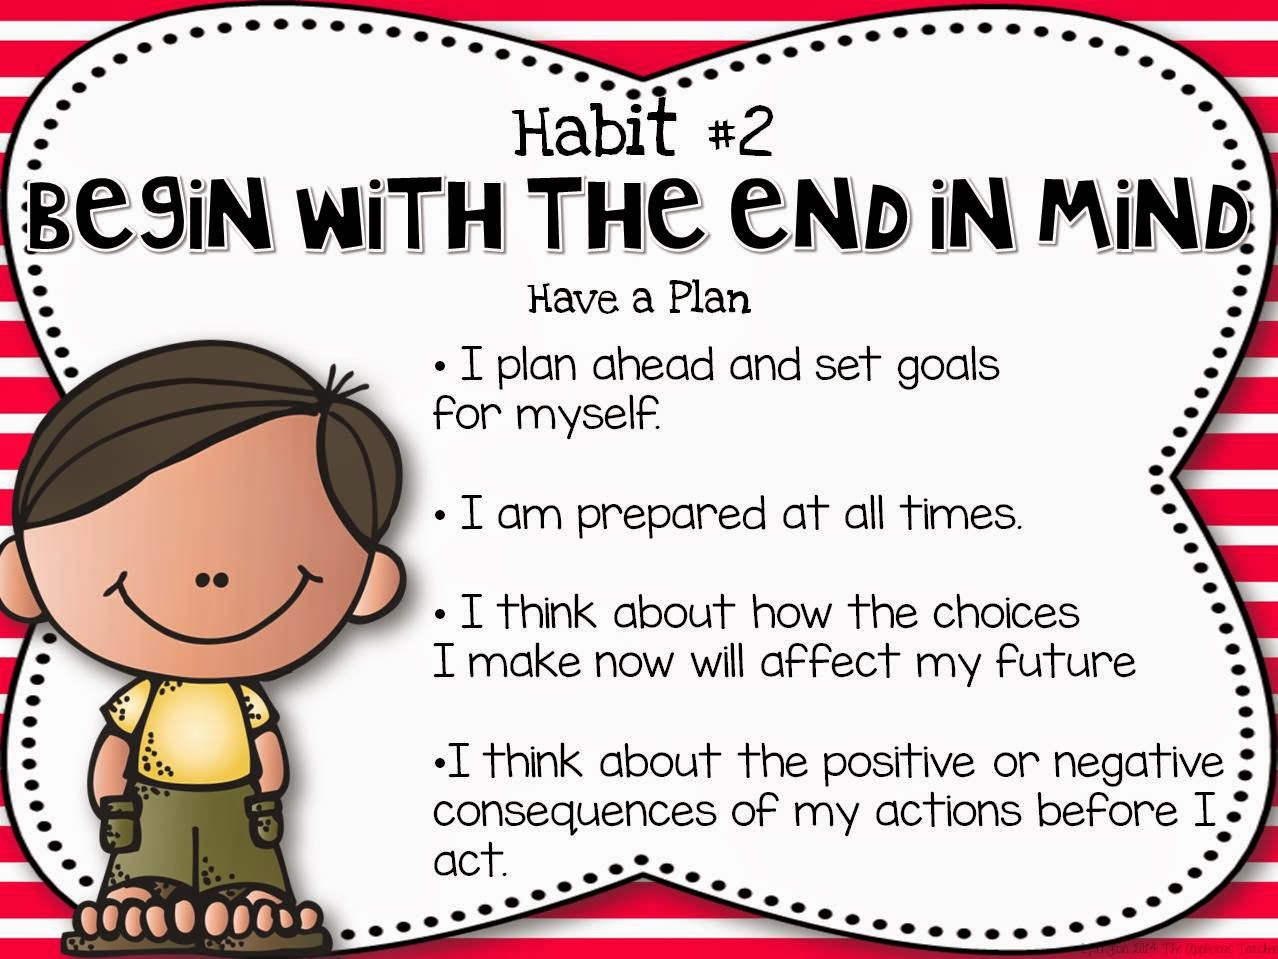 hight resolution of Habits / Habit 2- Begin With The End in Mind